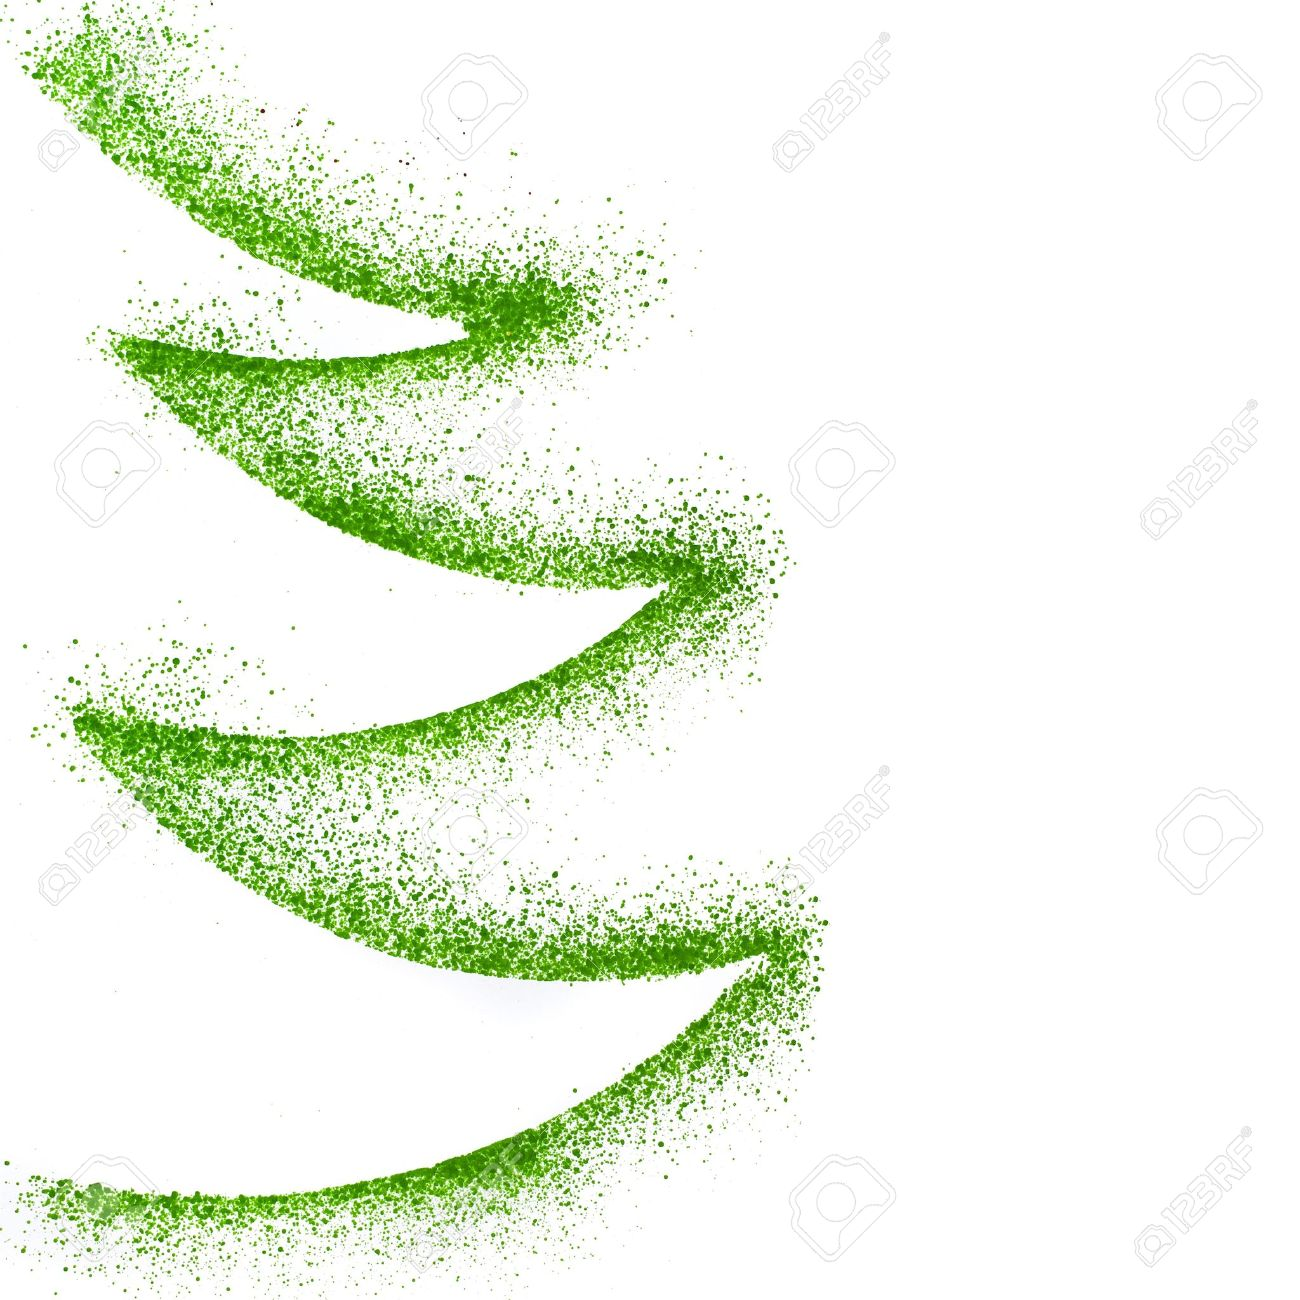 Christmas tree drawing decor with copy space isolated on white christmas tree drawing decor with copy space isolated on white paper background stock photo 20273839 buycottarizona Image collections